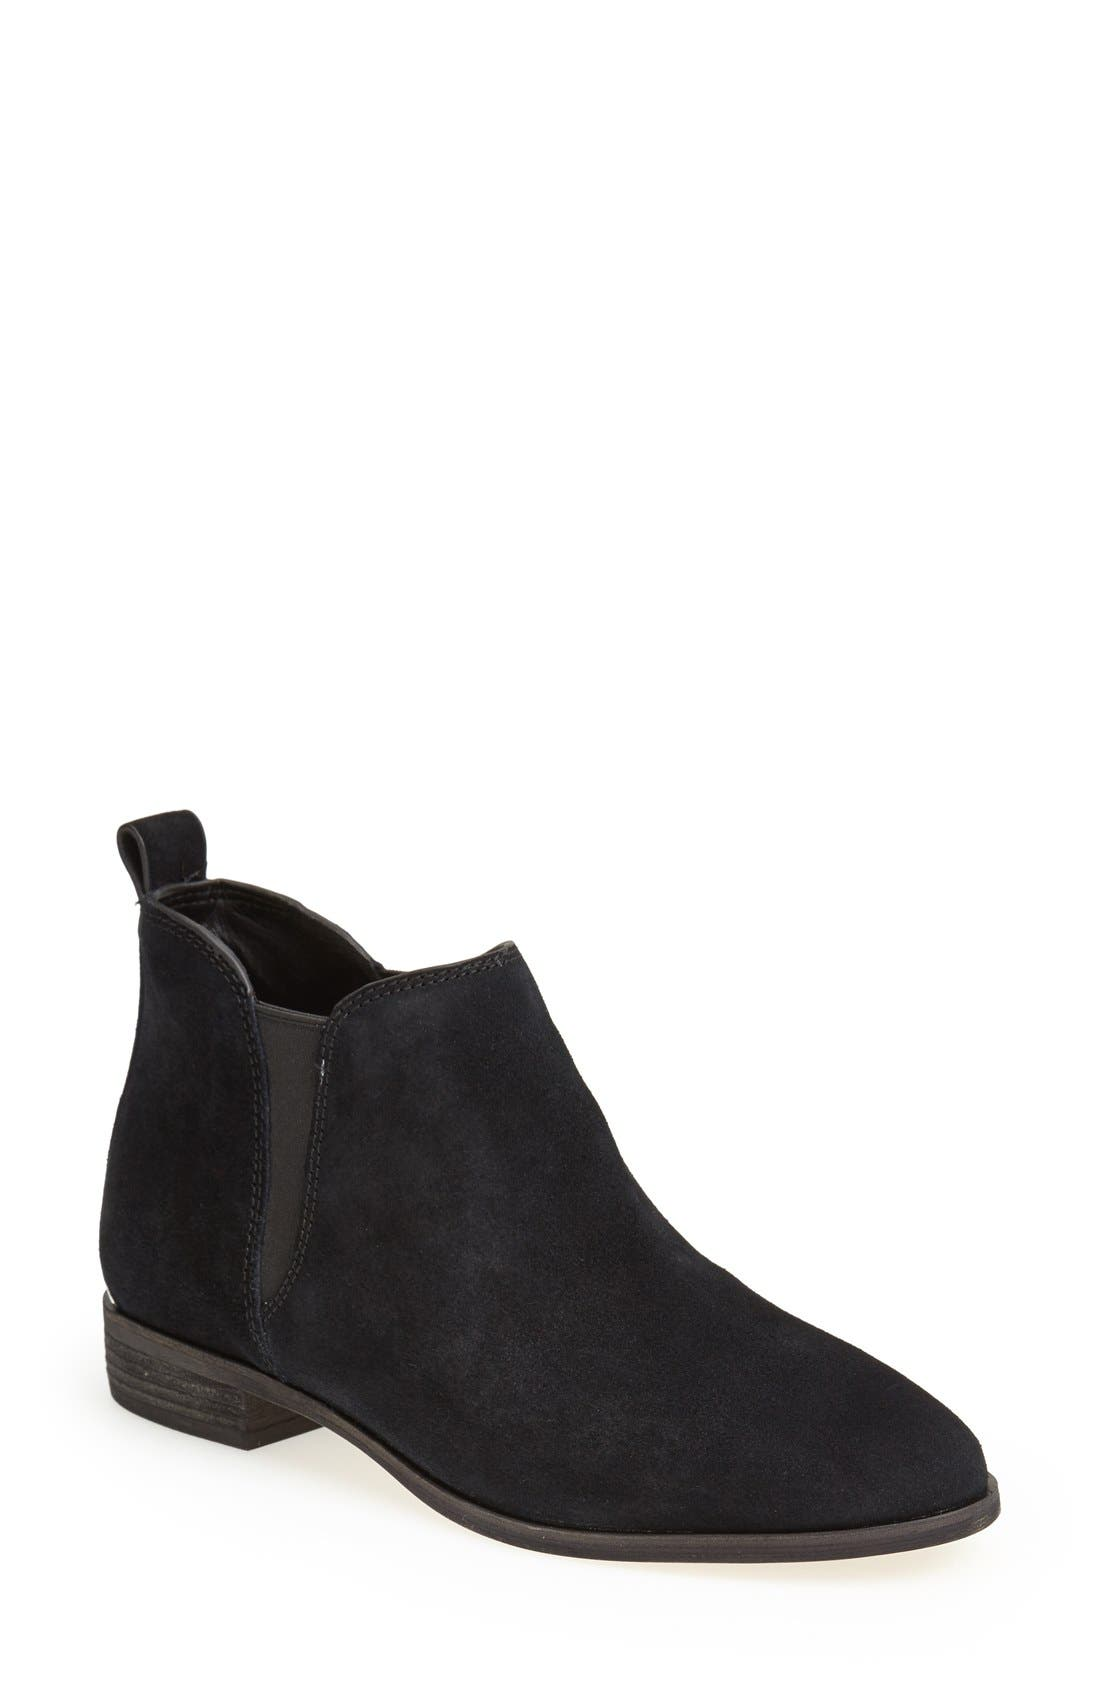 b71e960598622 Buy michael kors suede booties   OFF62% Discounted